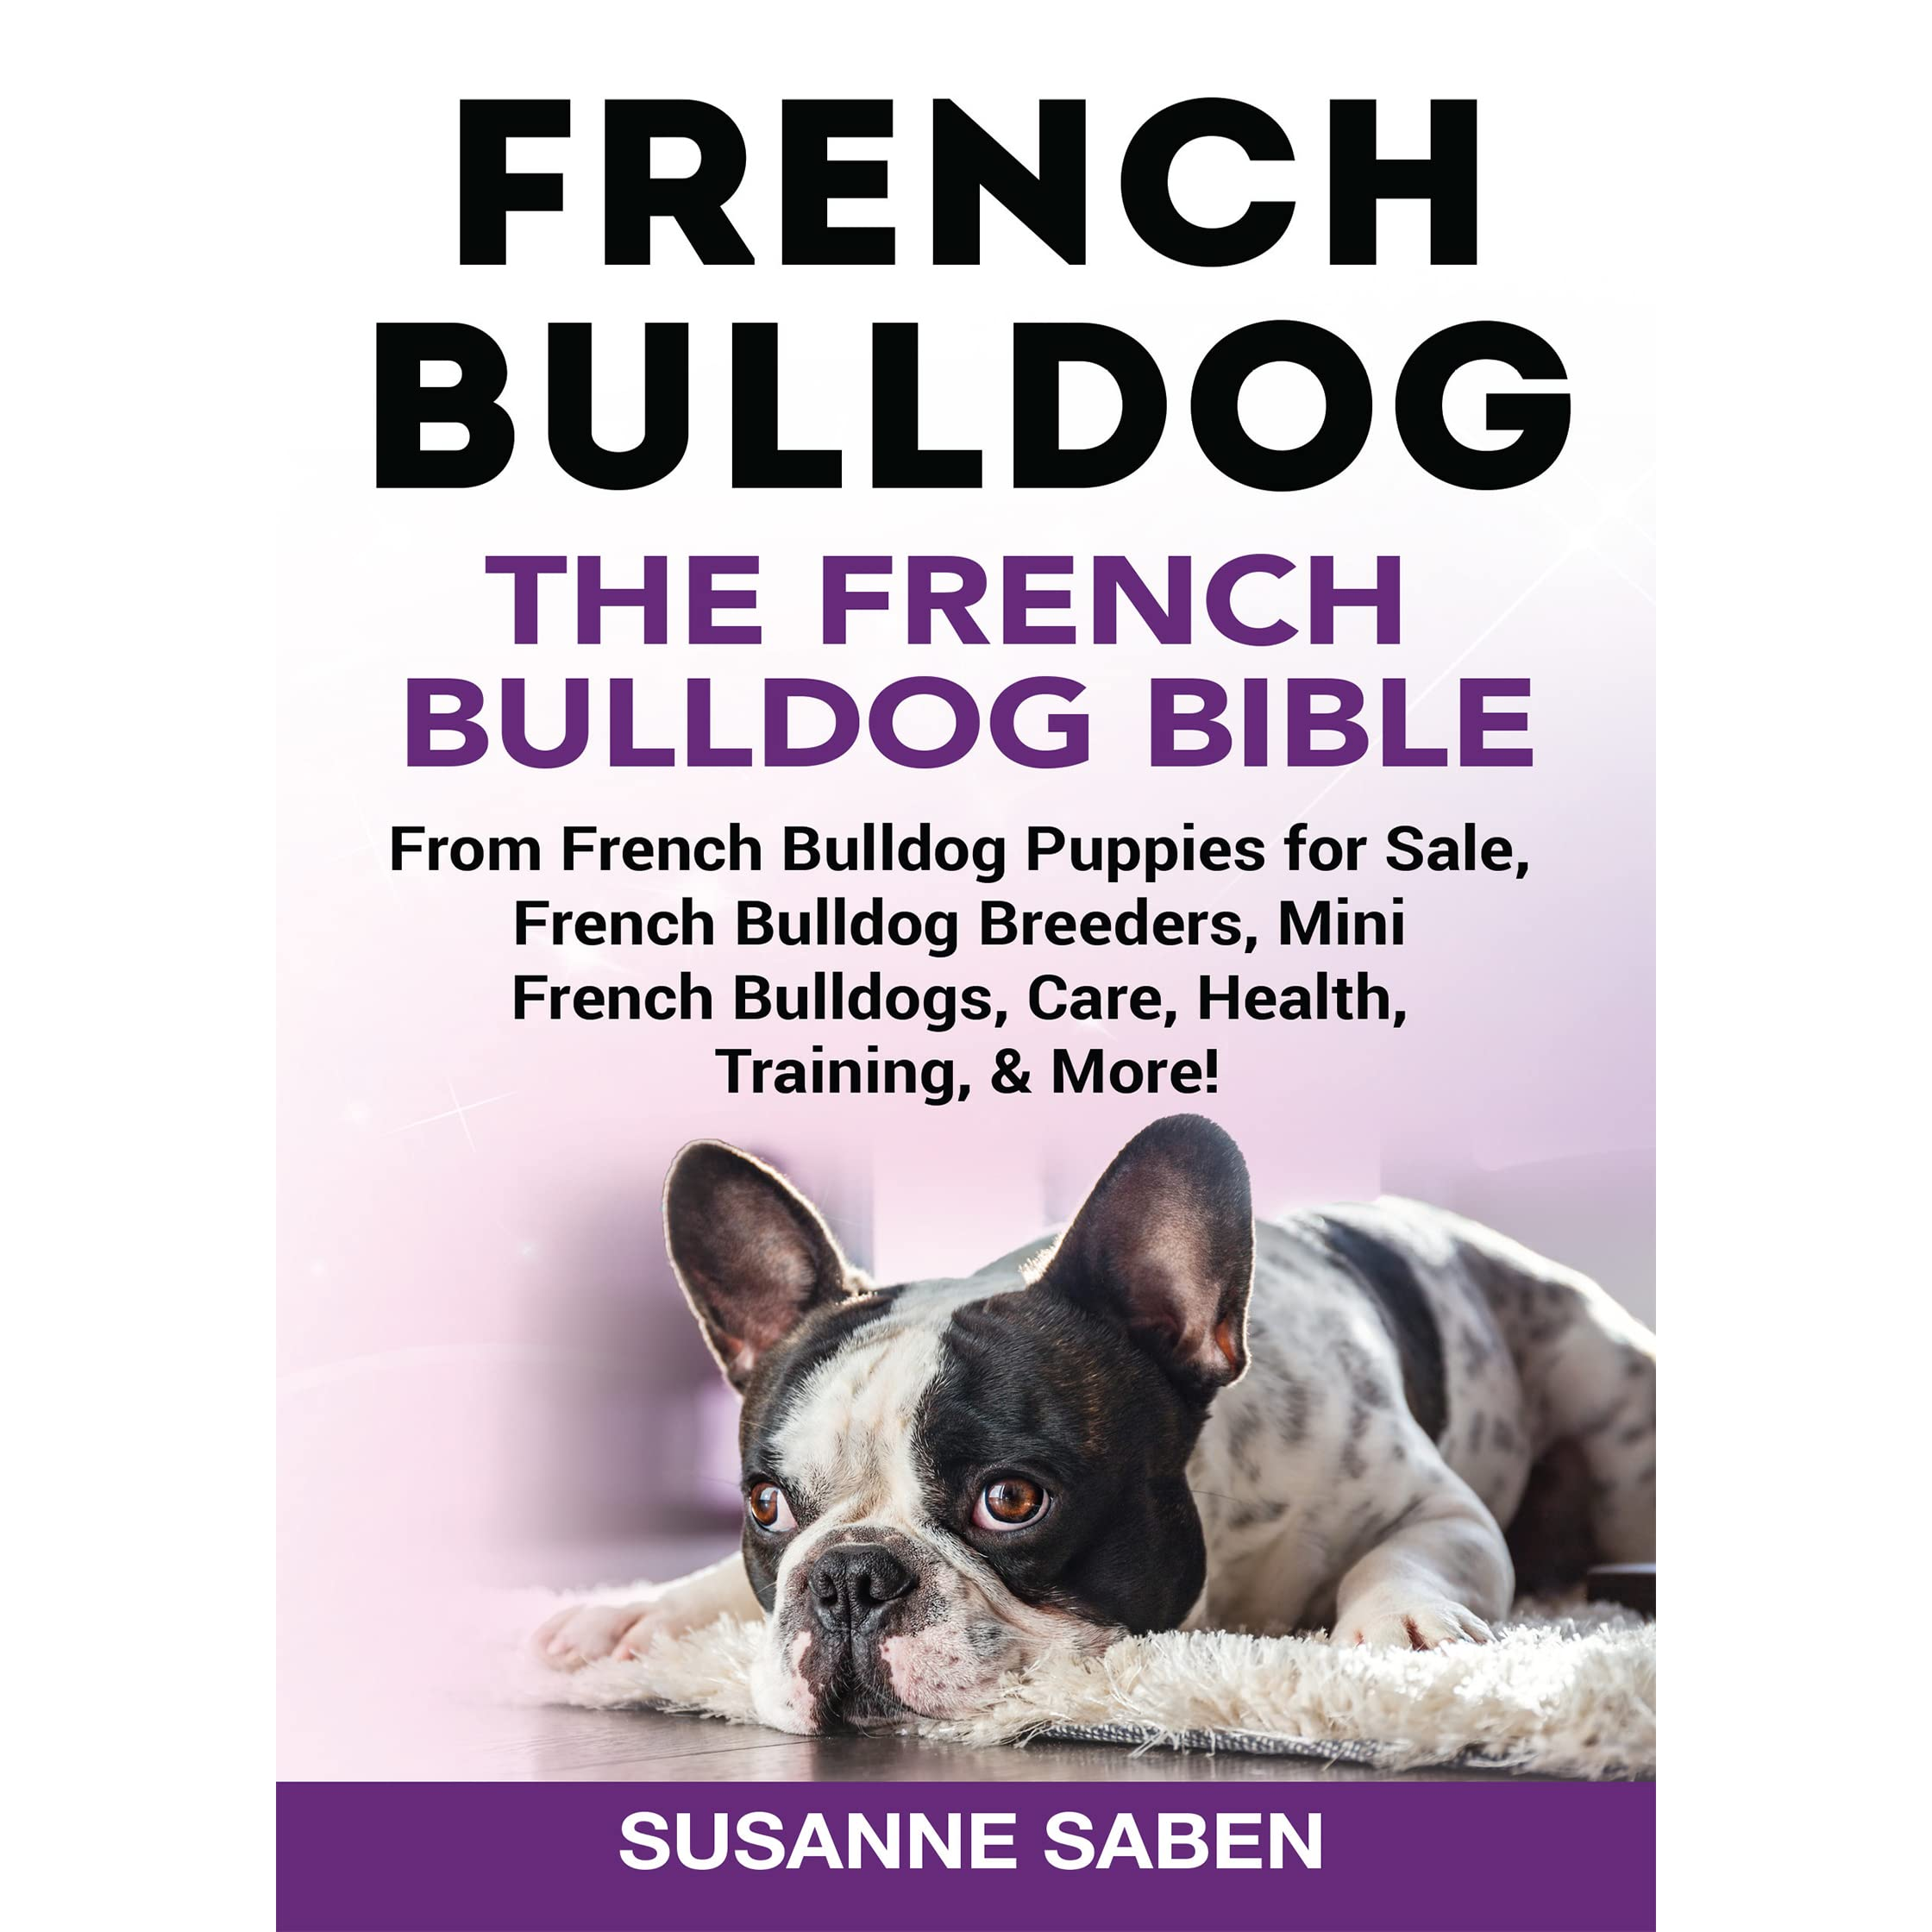 French Bulldog The French Bulldog Bible From French Bulldog Puppies For Sale French Bulldog Breeders Mini French Bulldogs Care Health Training More By Susanne Saben